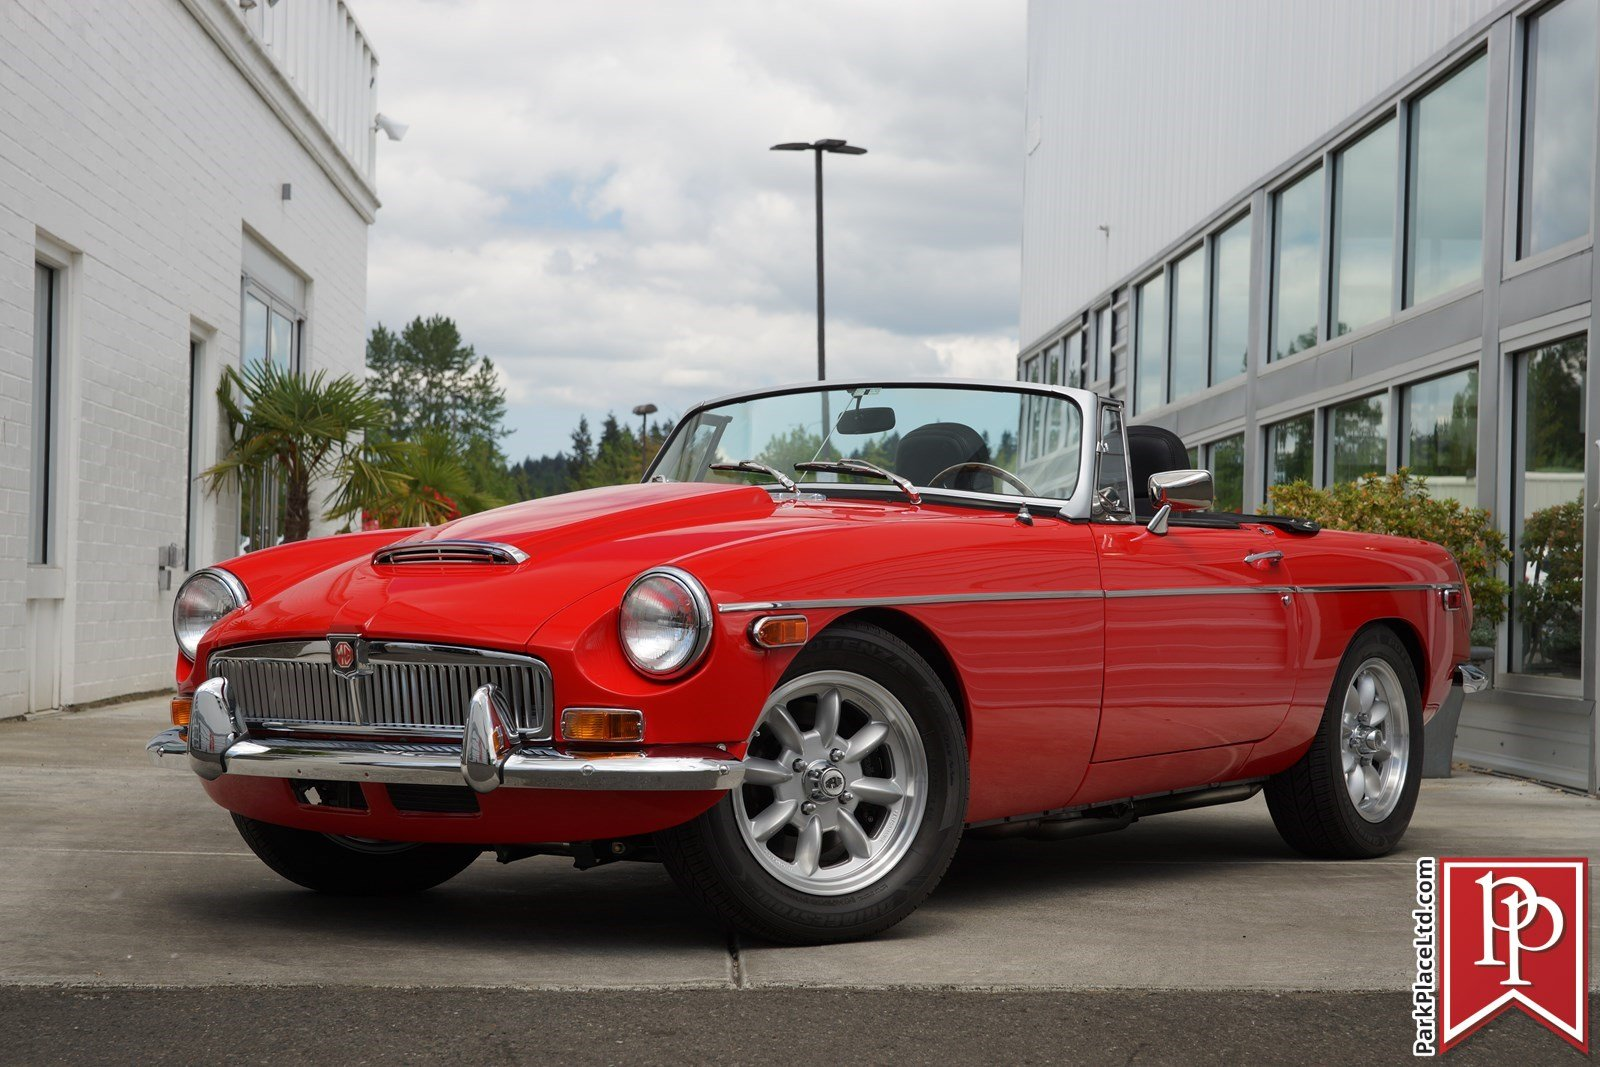 hight resolution of this 1979 mg mgb convertible is for sale on ebay in bellevue washington for 39 950 under the hood sits a 302 gt40 v8 crate engine that makes 340